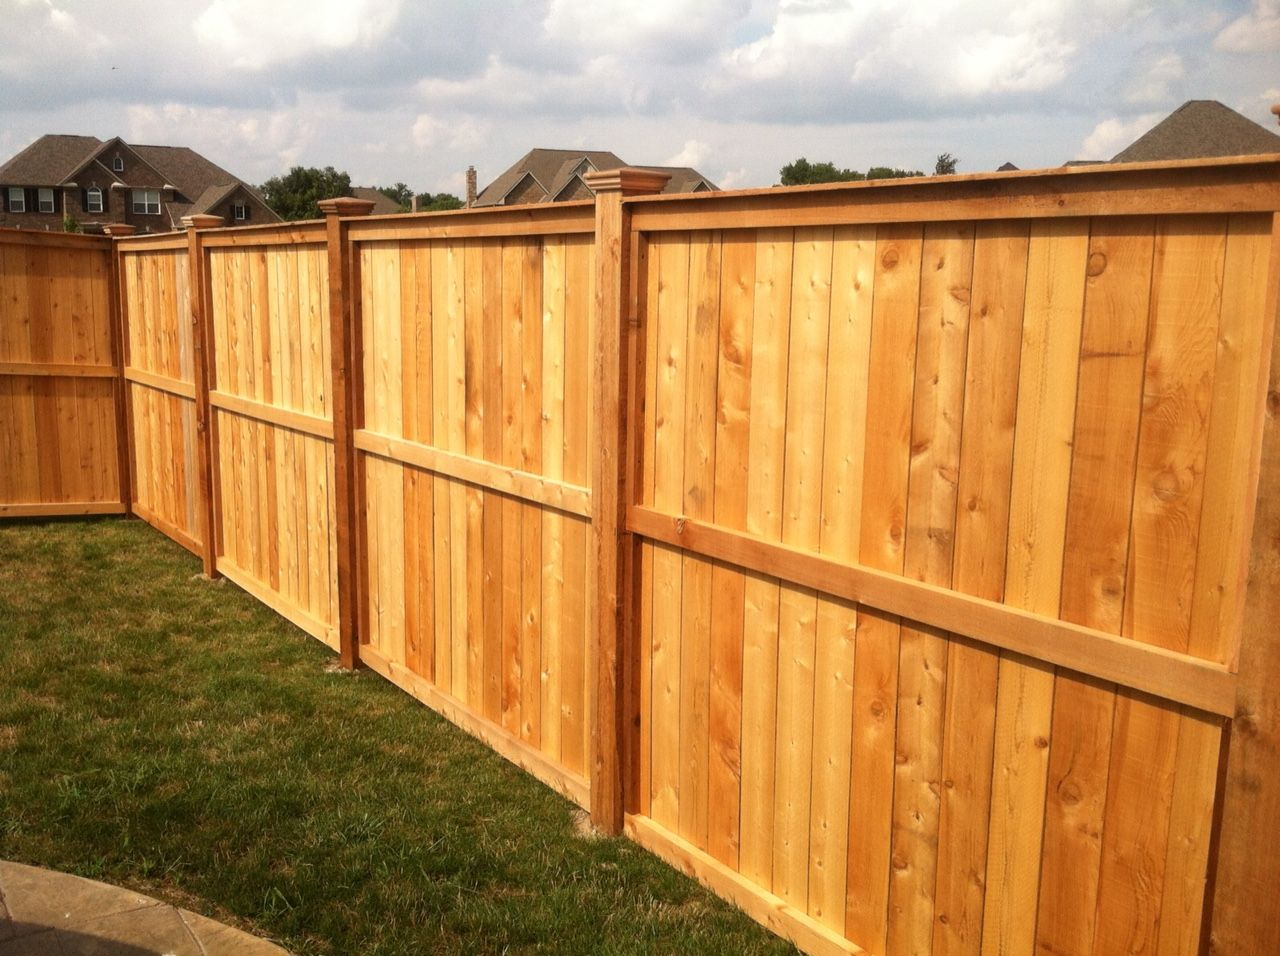 Backyard Fence Decorative Wooden Privacy Fence Fence Wood Fence Design Wood